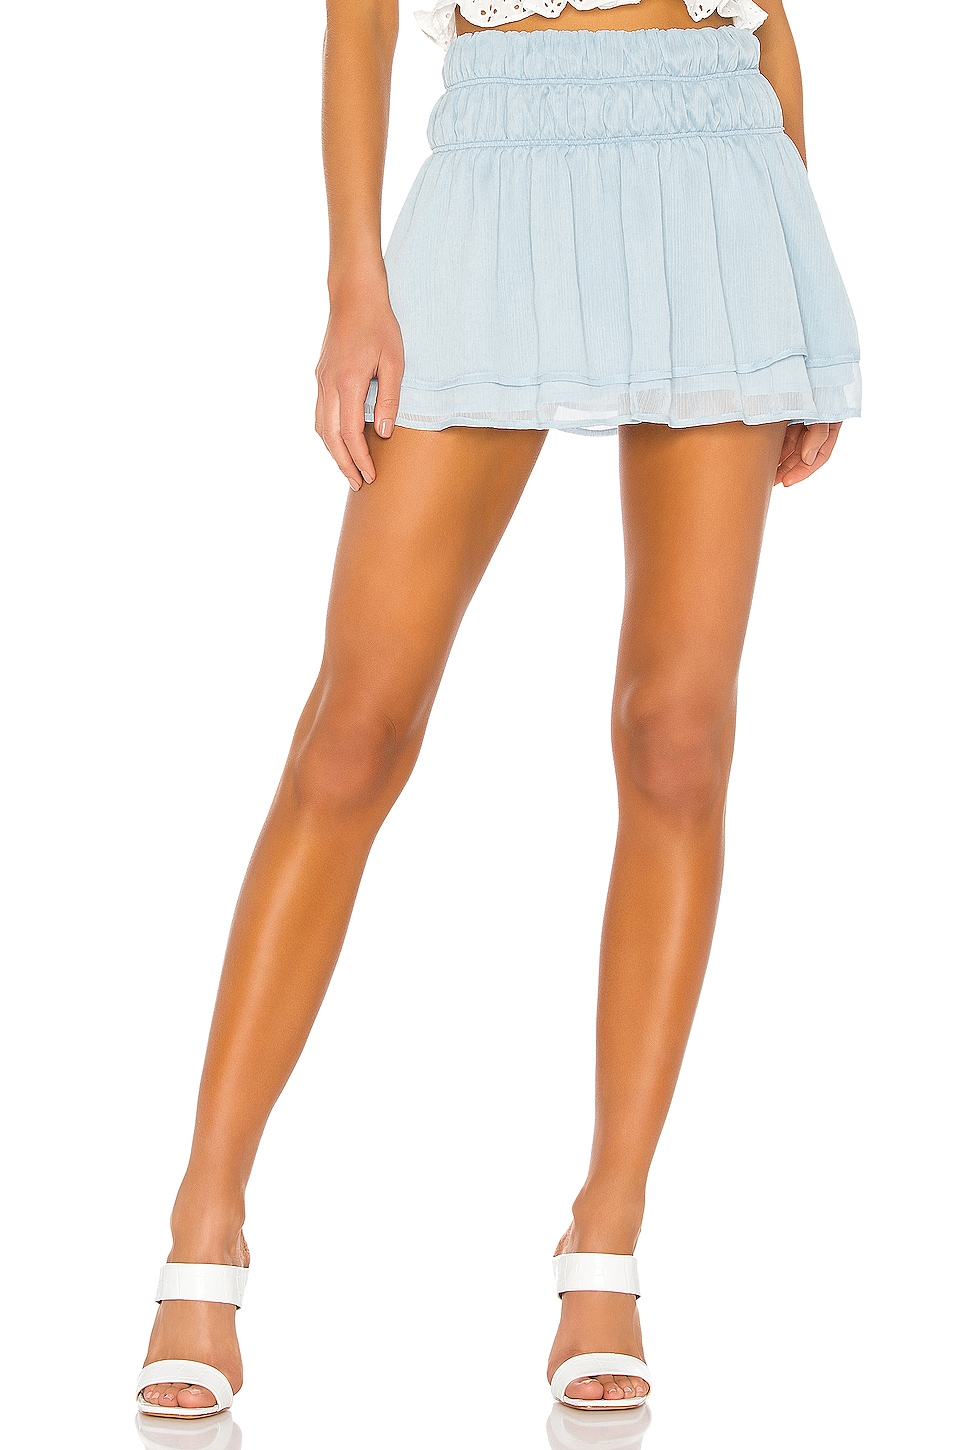 Tularosa Natalie Skirt in Baby Blue